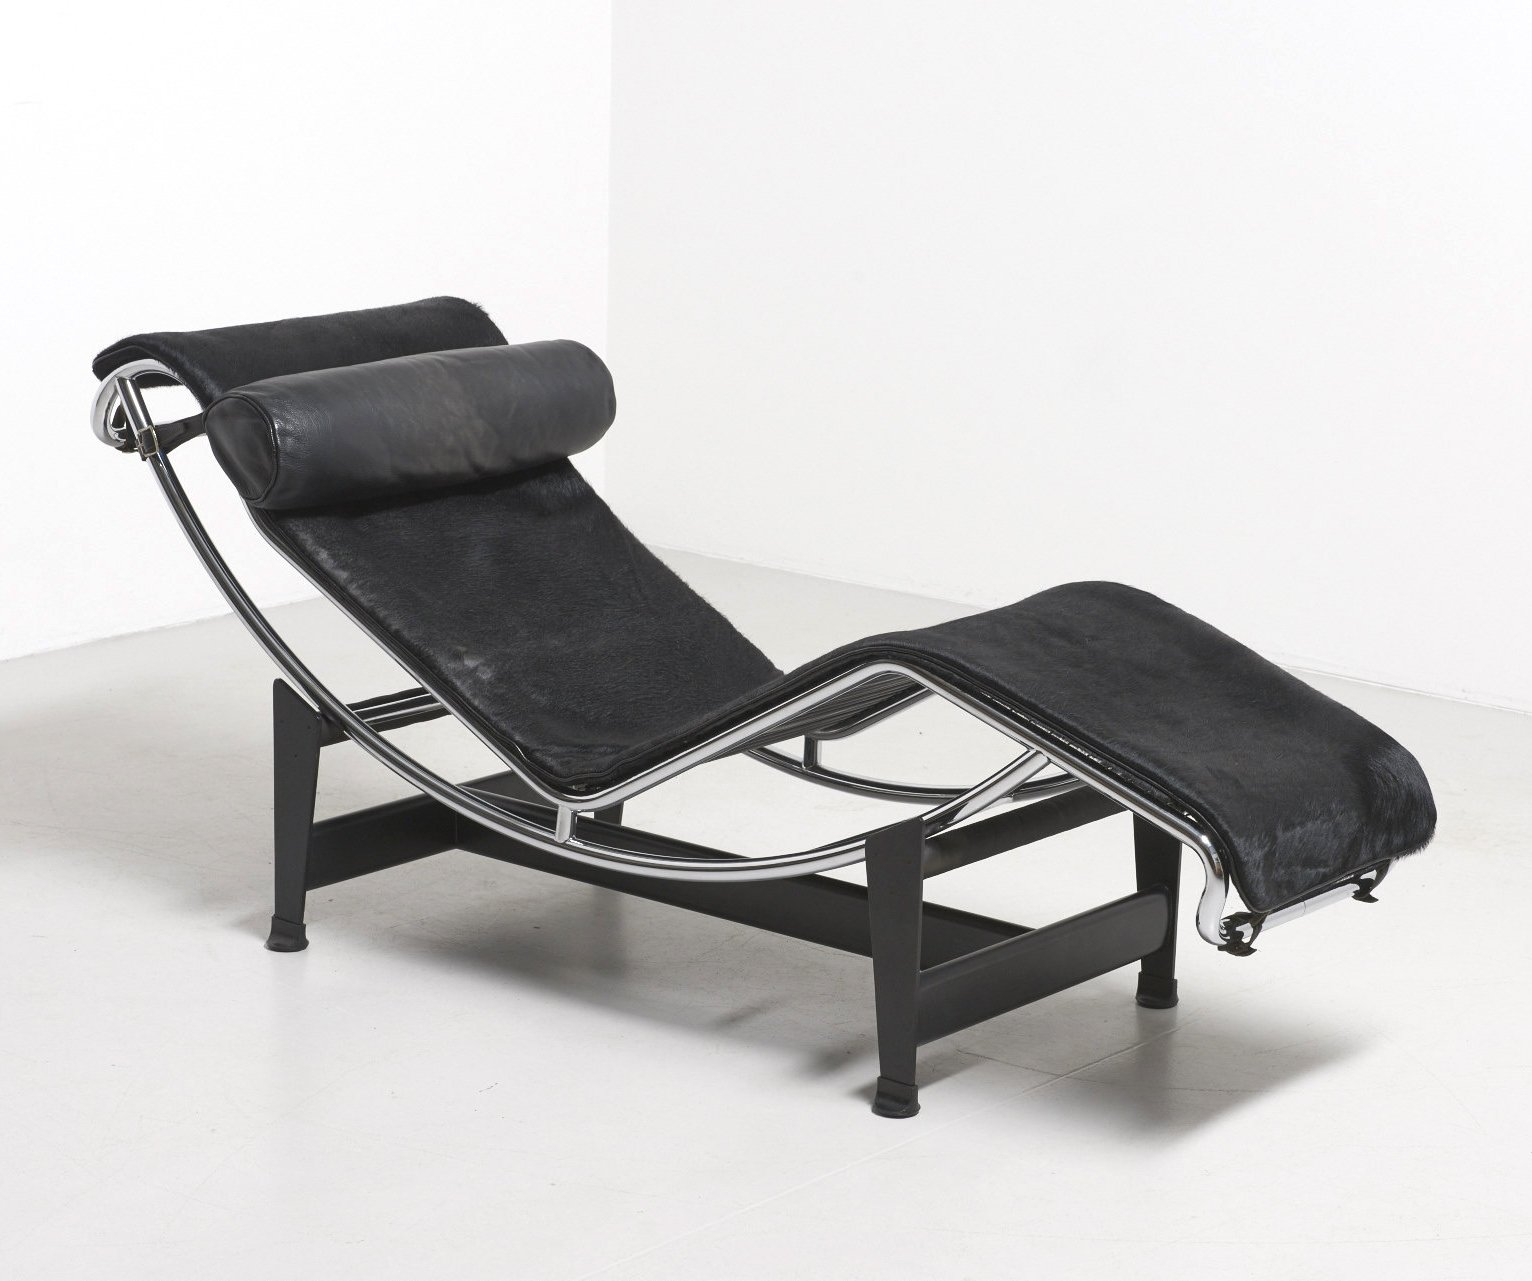 lc4 lounge chair from the sixties by le corbusier charlotte perriand for cassina 62616. Black Bedroom Furniture Sets. Home Design Ideas